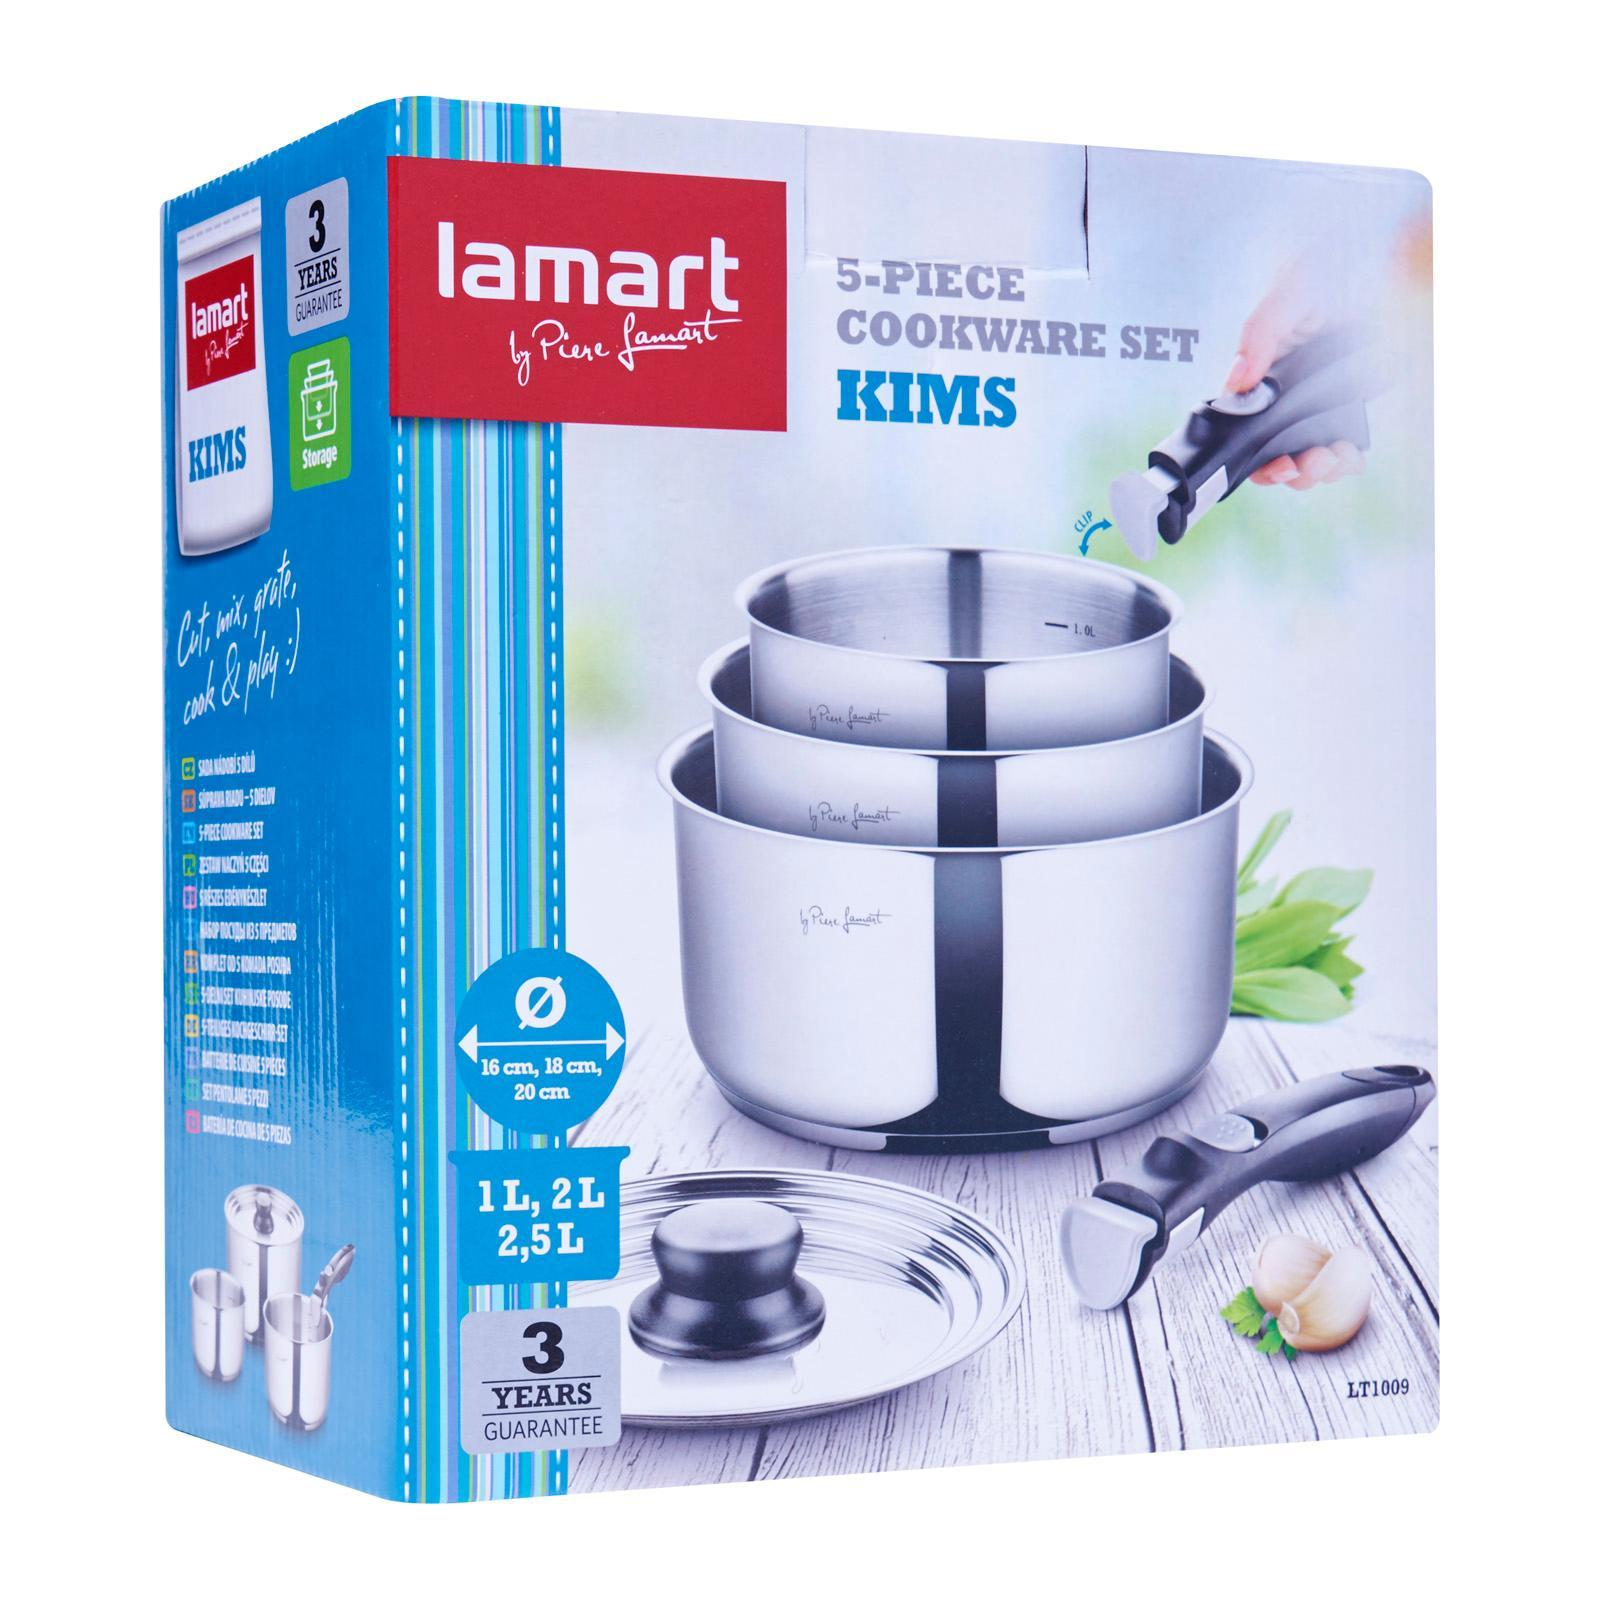 Lamart Stainless Steel Cookware Set 5Pcs - 3 Saucepans With Common Lid And Detachable Handle